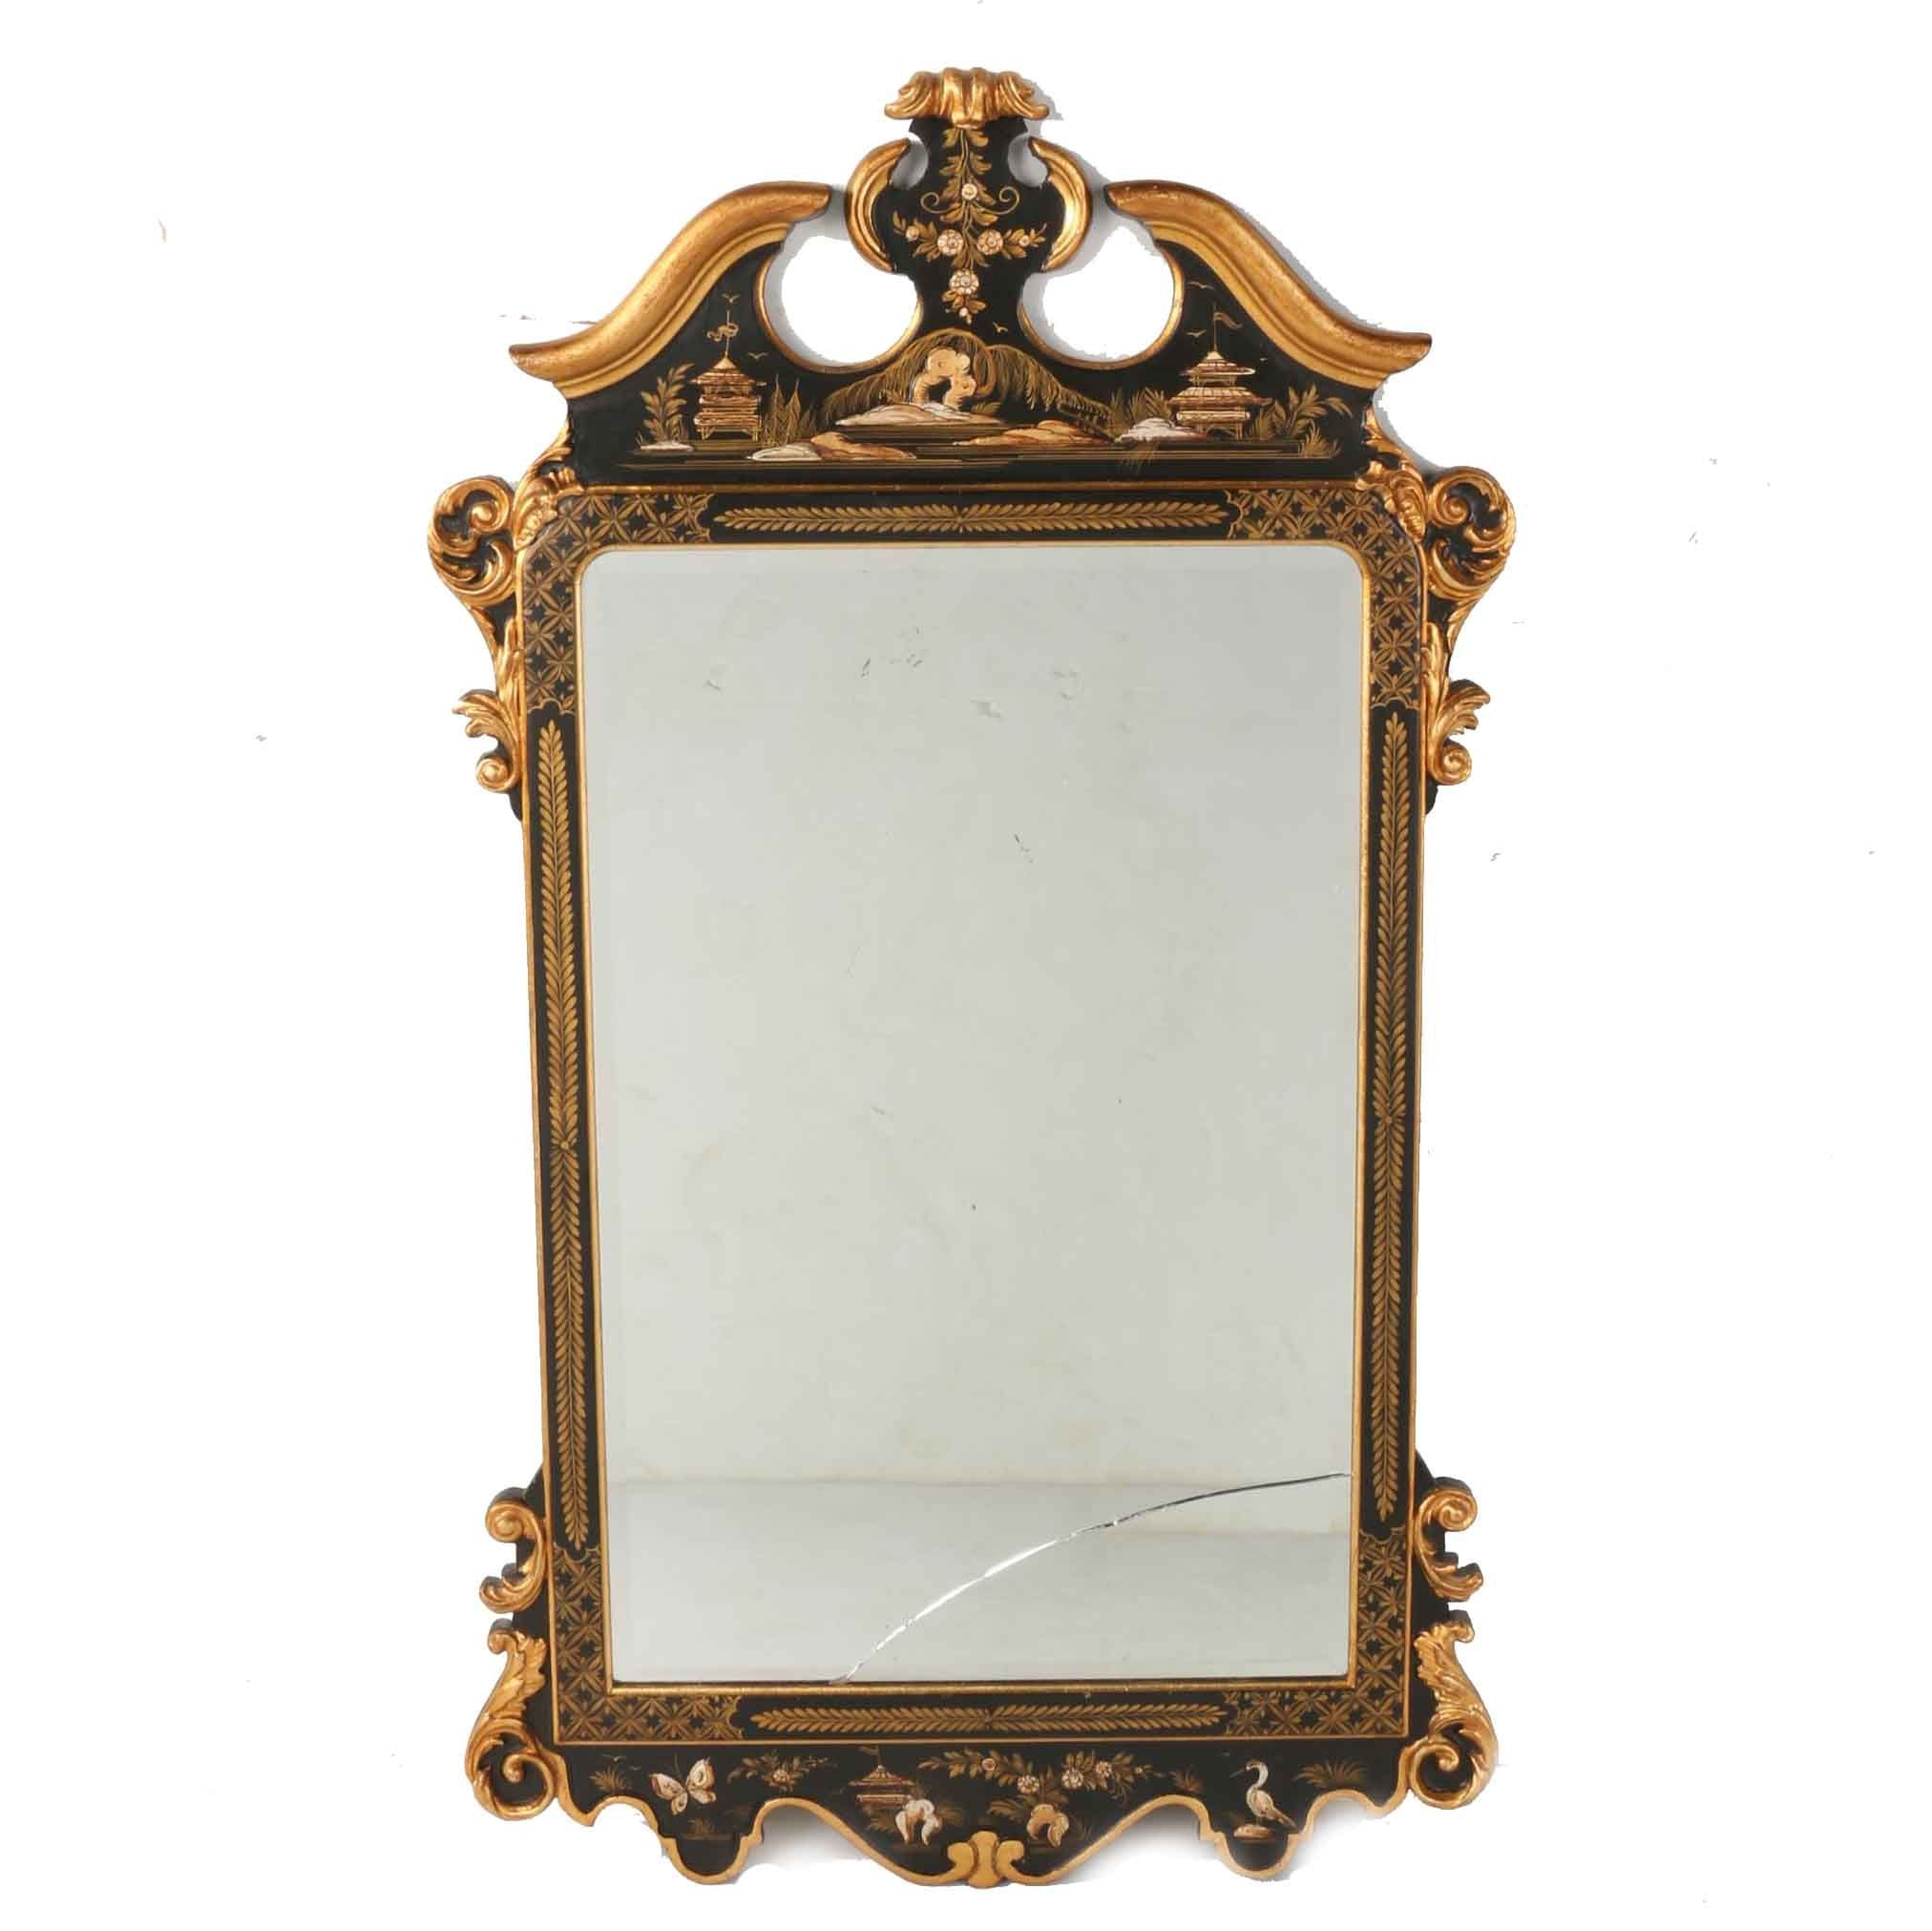 LaBarge Hand-Painted Wooden Wall Mirror